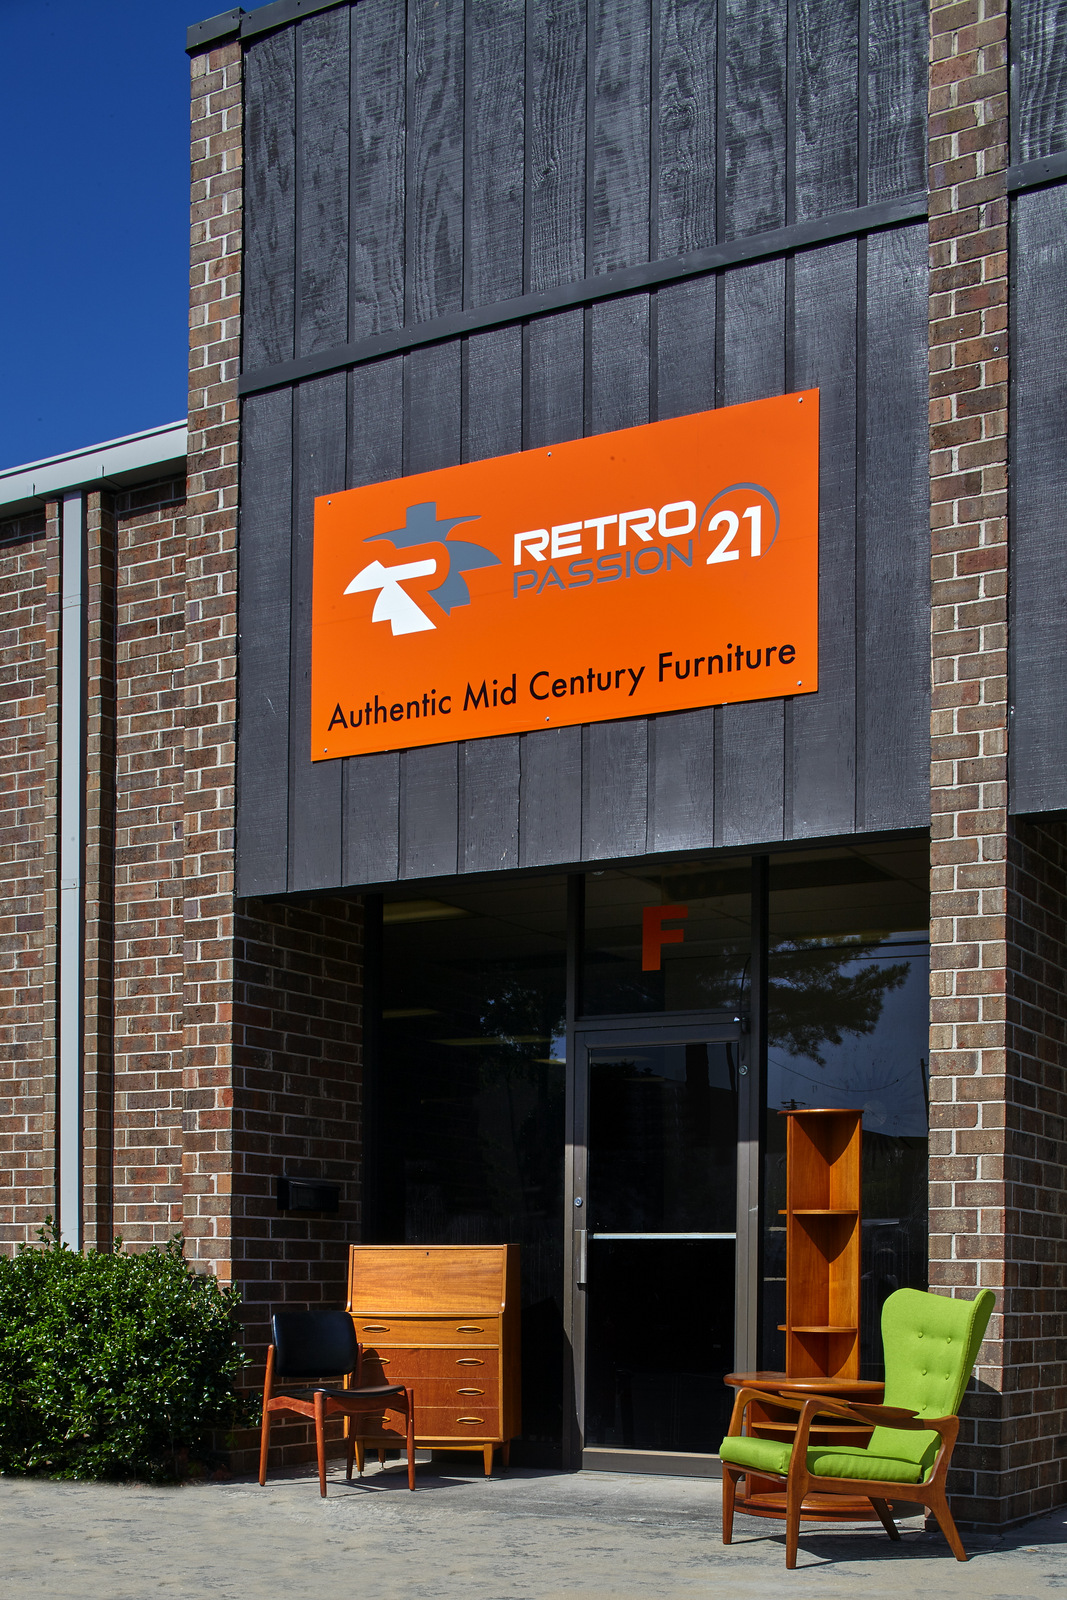 Retropassion21 Opens 5000 Square Foot Showroom With